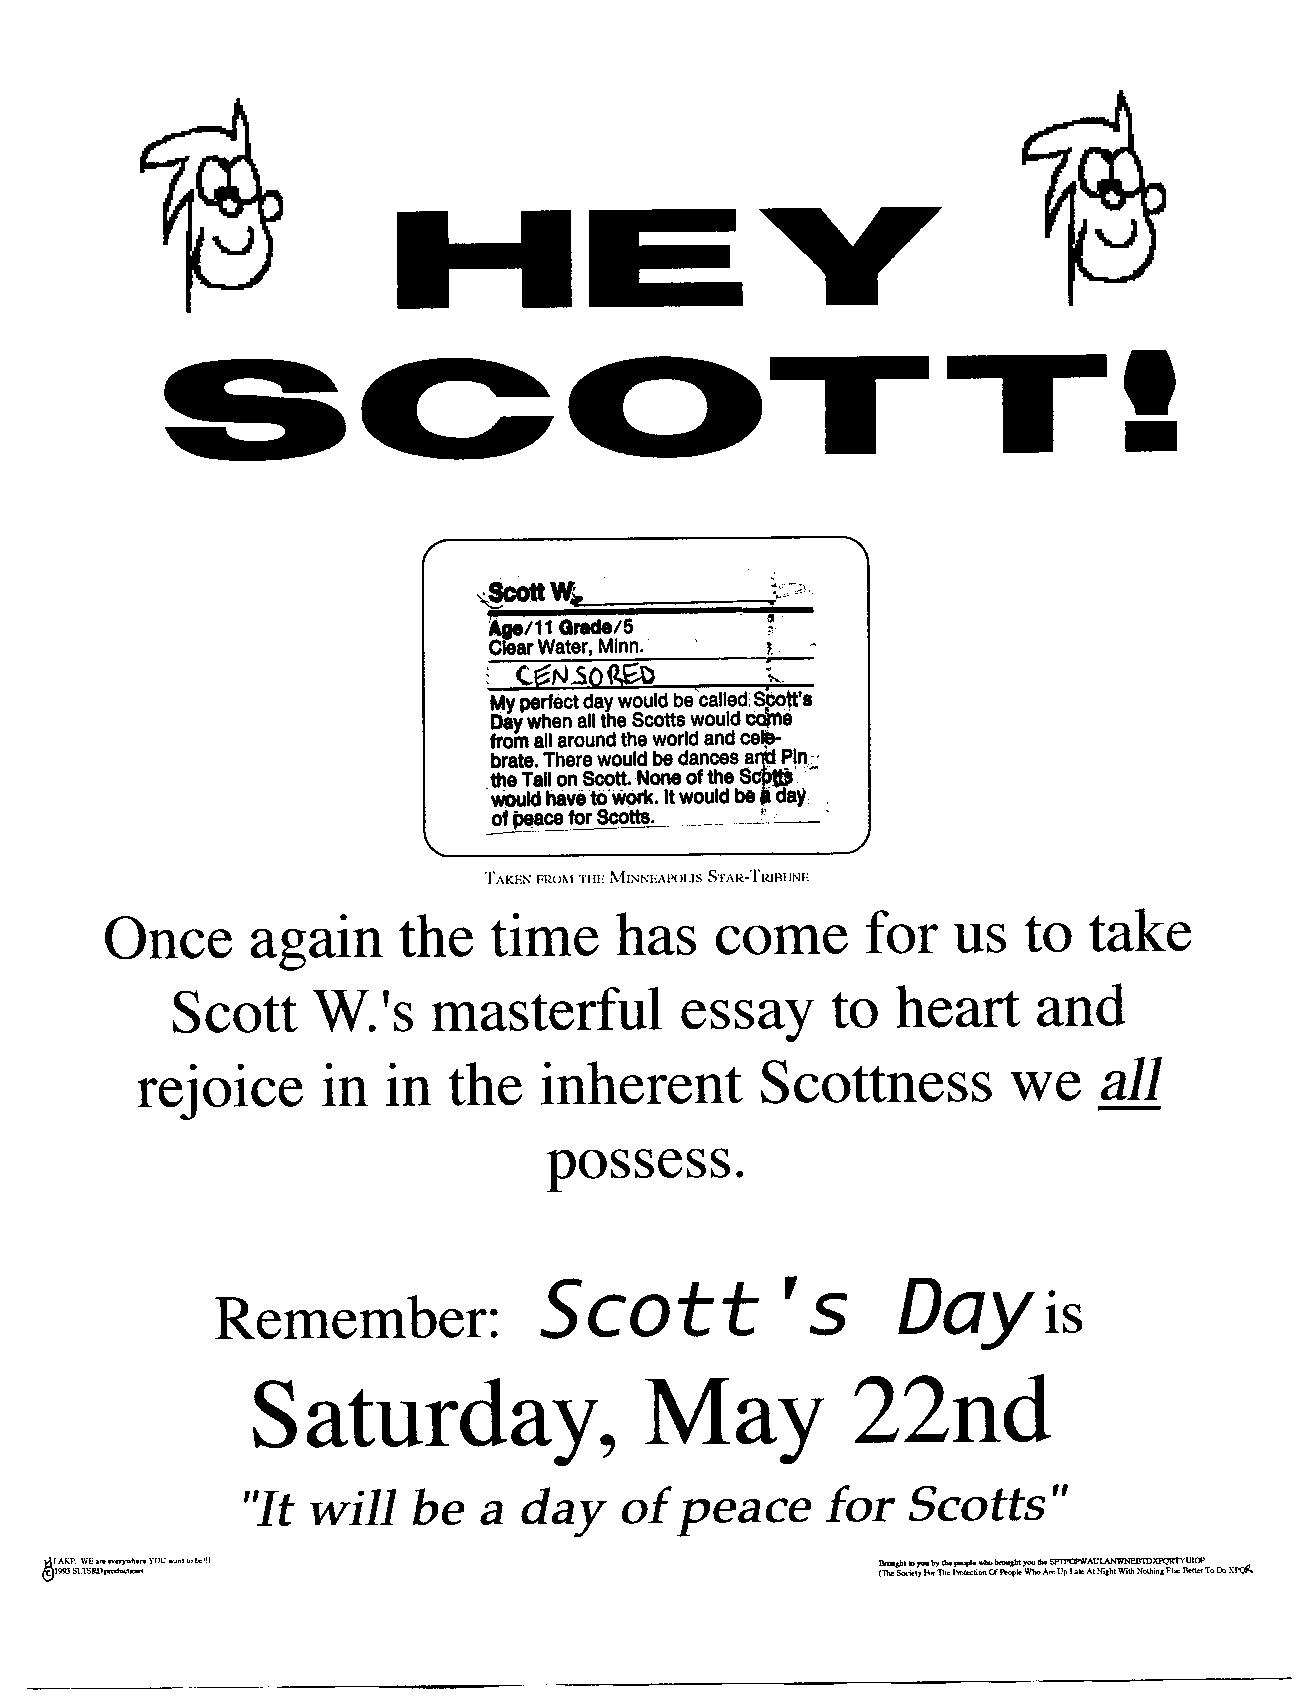 scott jpg reprint of the original essay